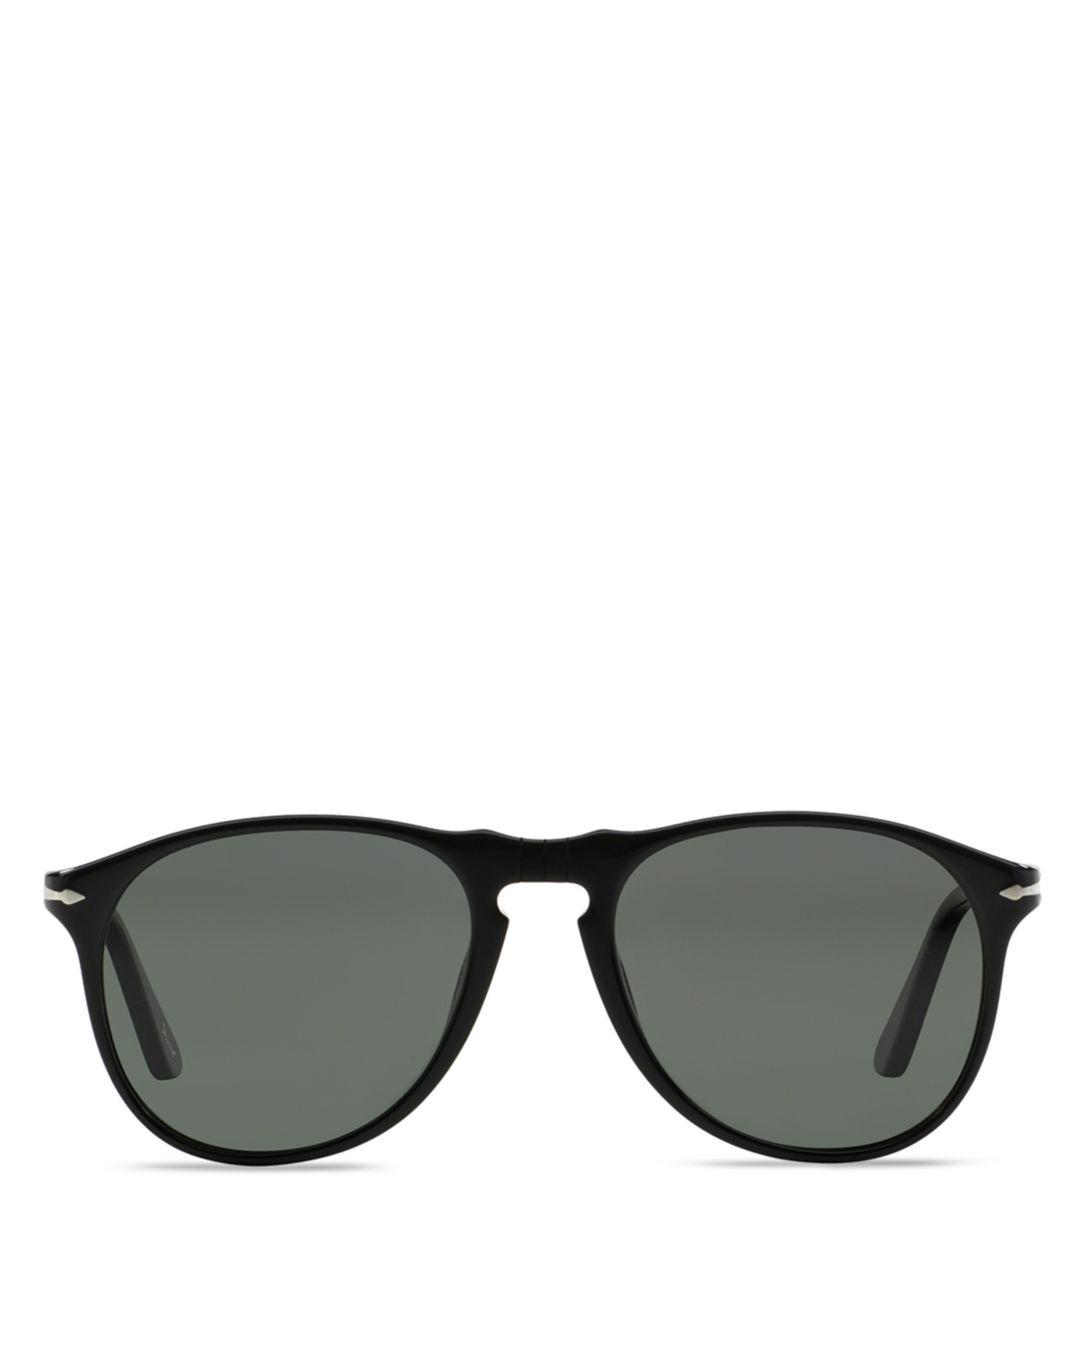 7e50b660afc75 Lyst - Persol 55mm in Black for Men